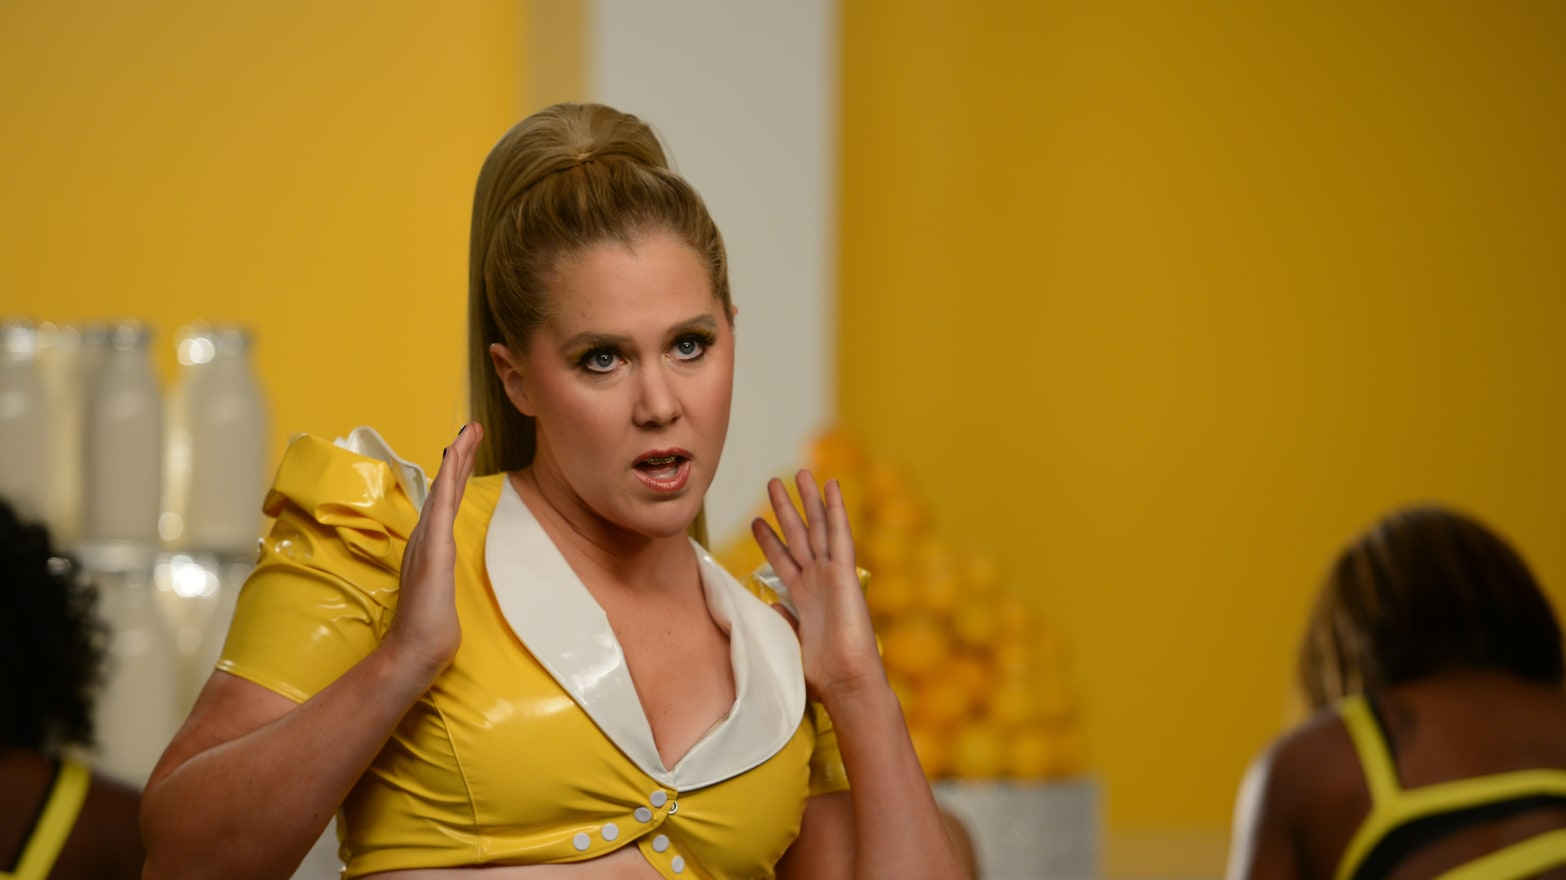 Amy Schumer Sex Video amy schumer is the comedic genius we've all been waiting for